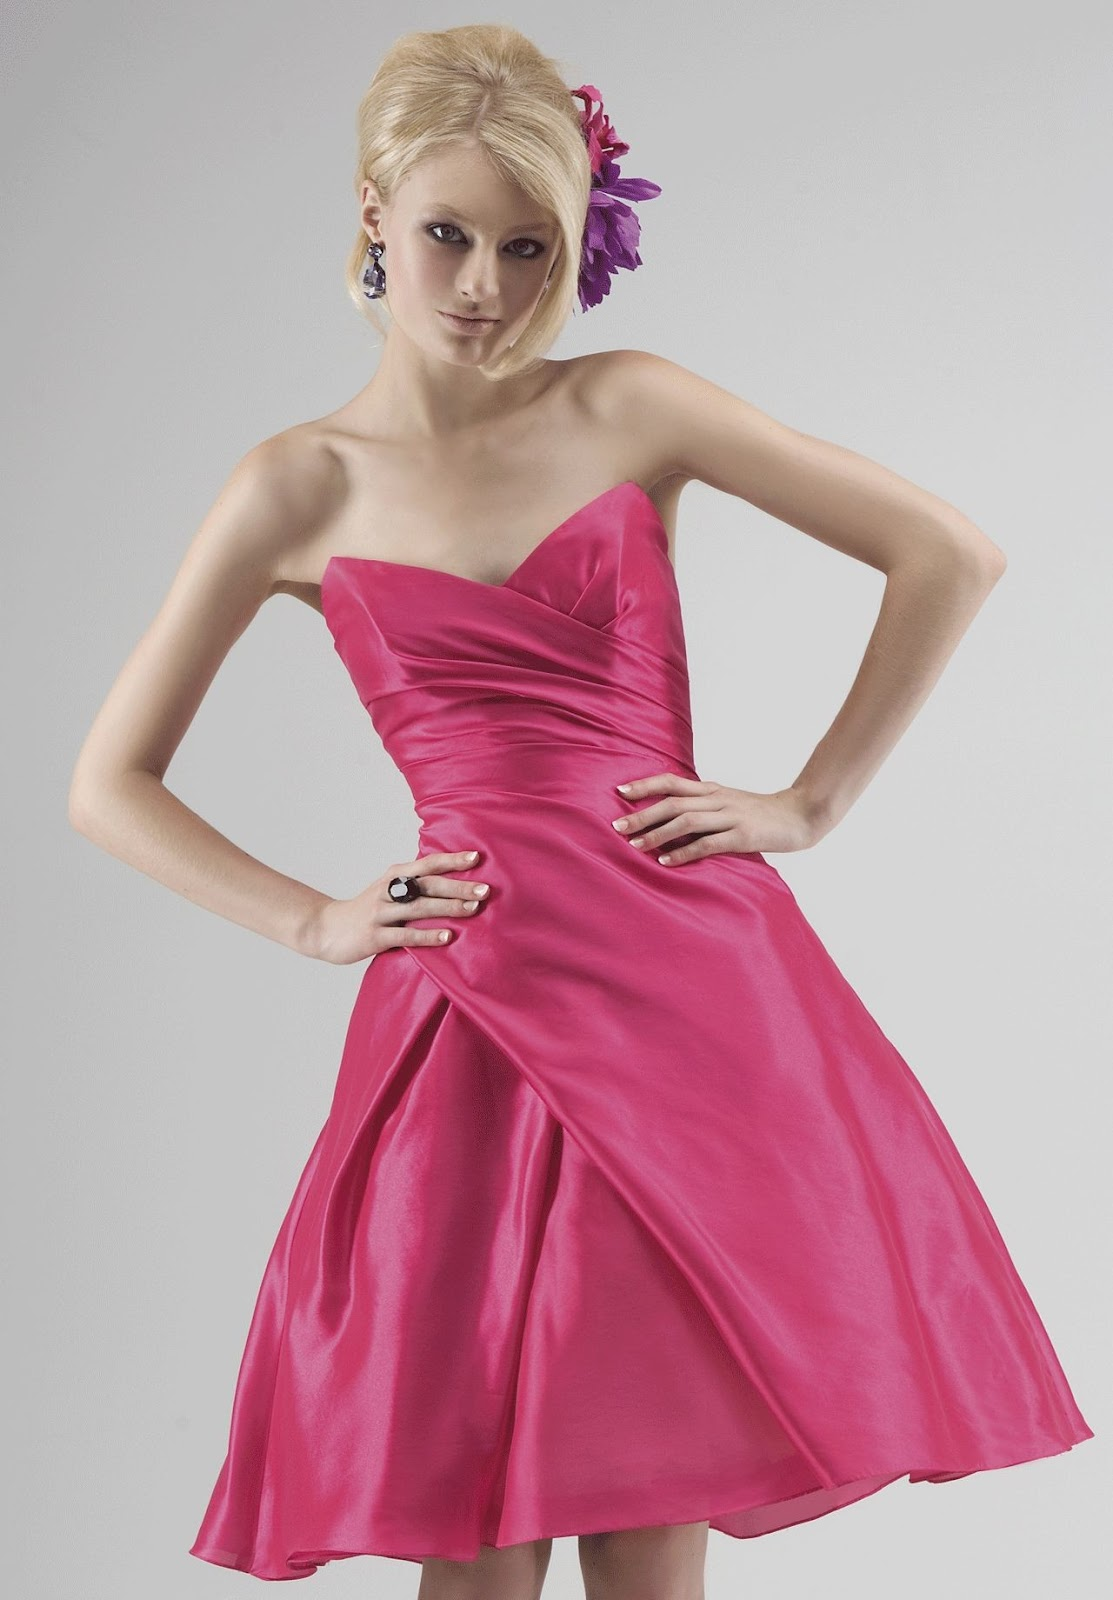 WhiteAzalea Ball Gowns: Ball Gown Bridesmaid Dresses